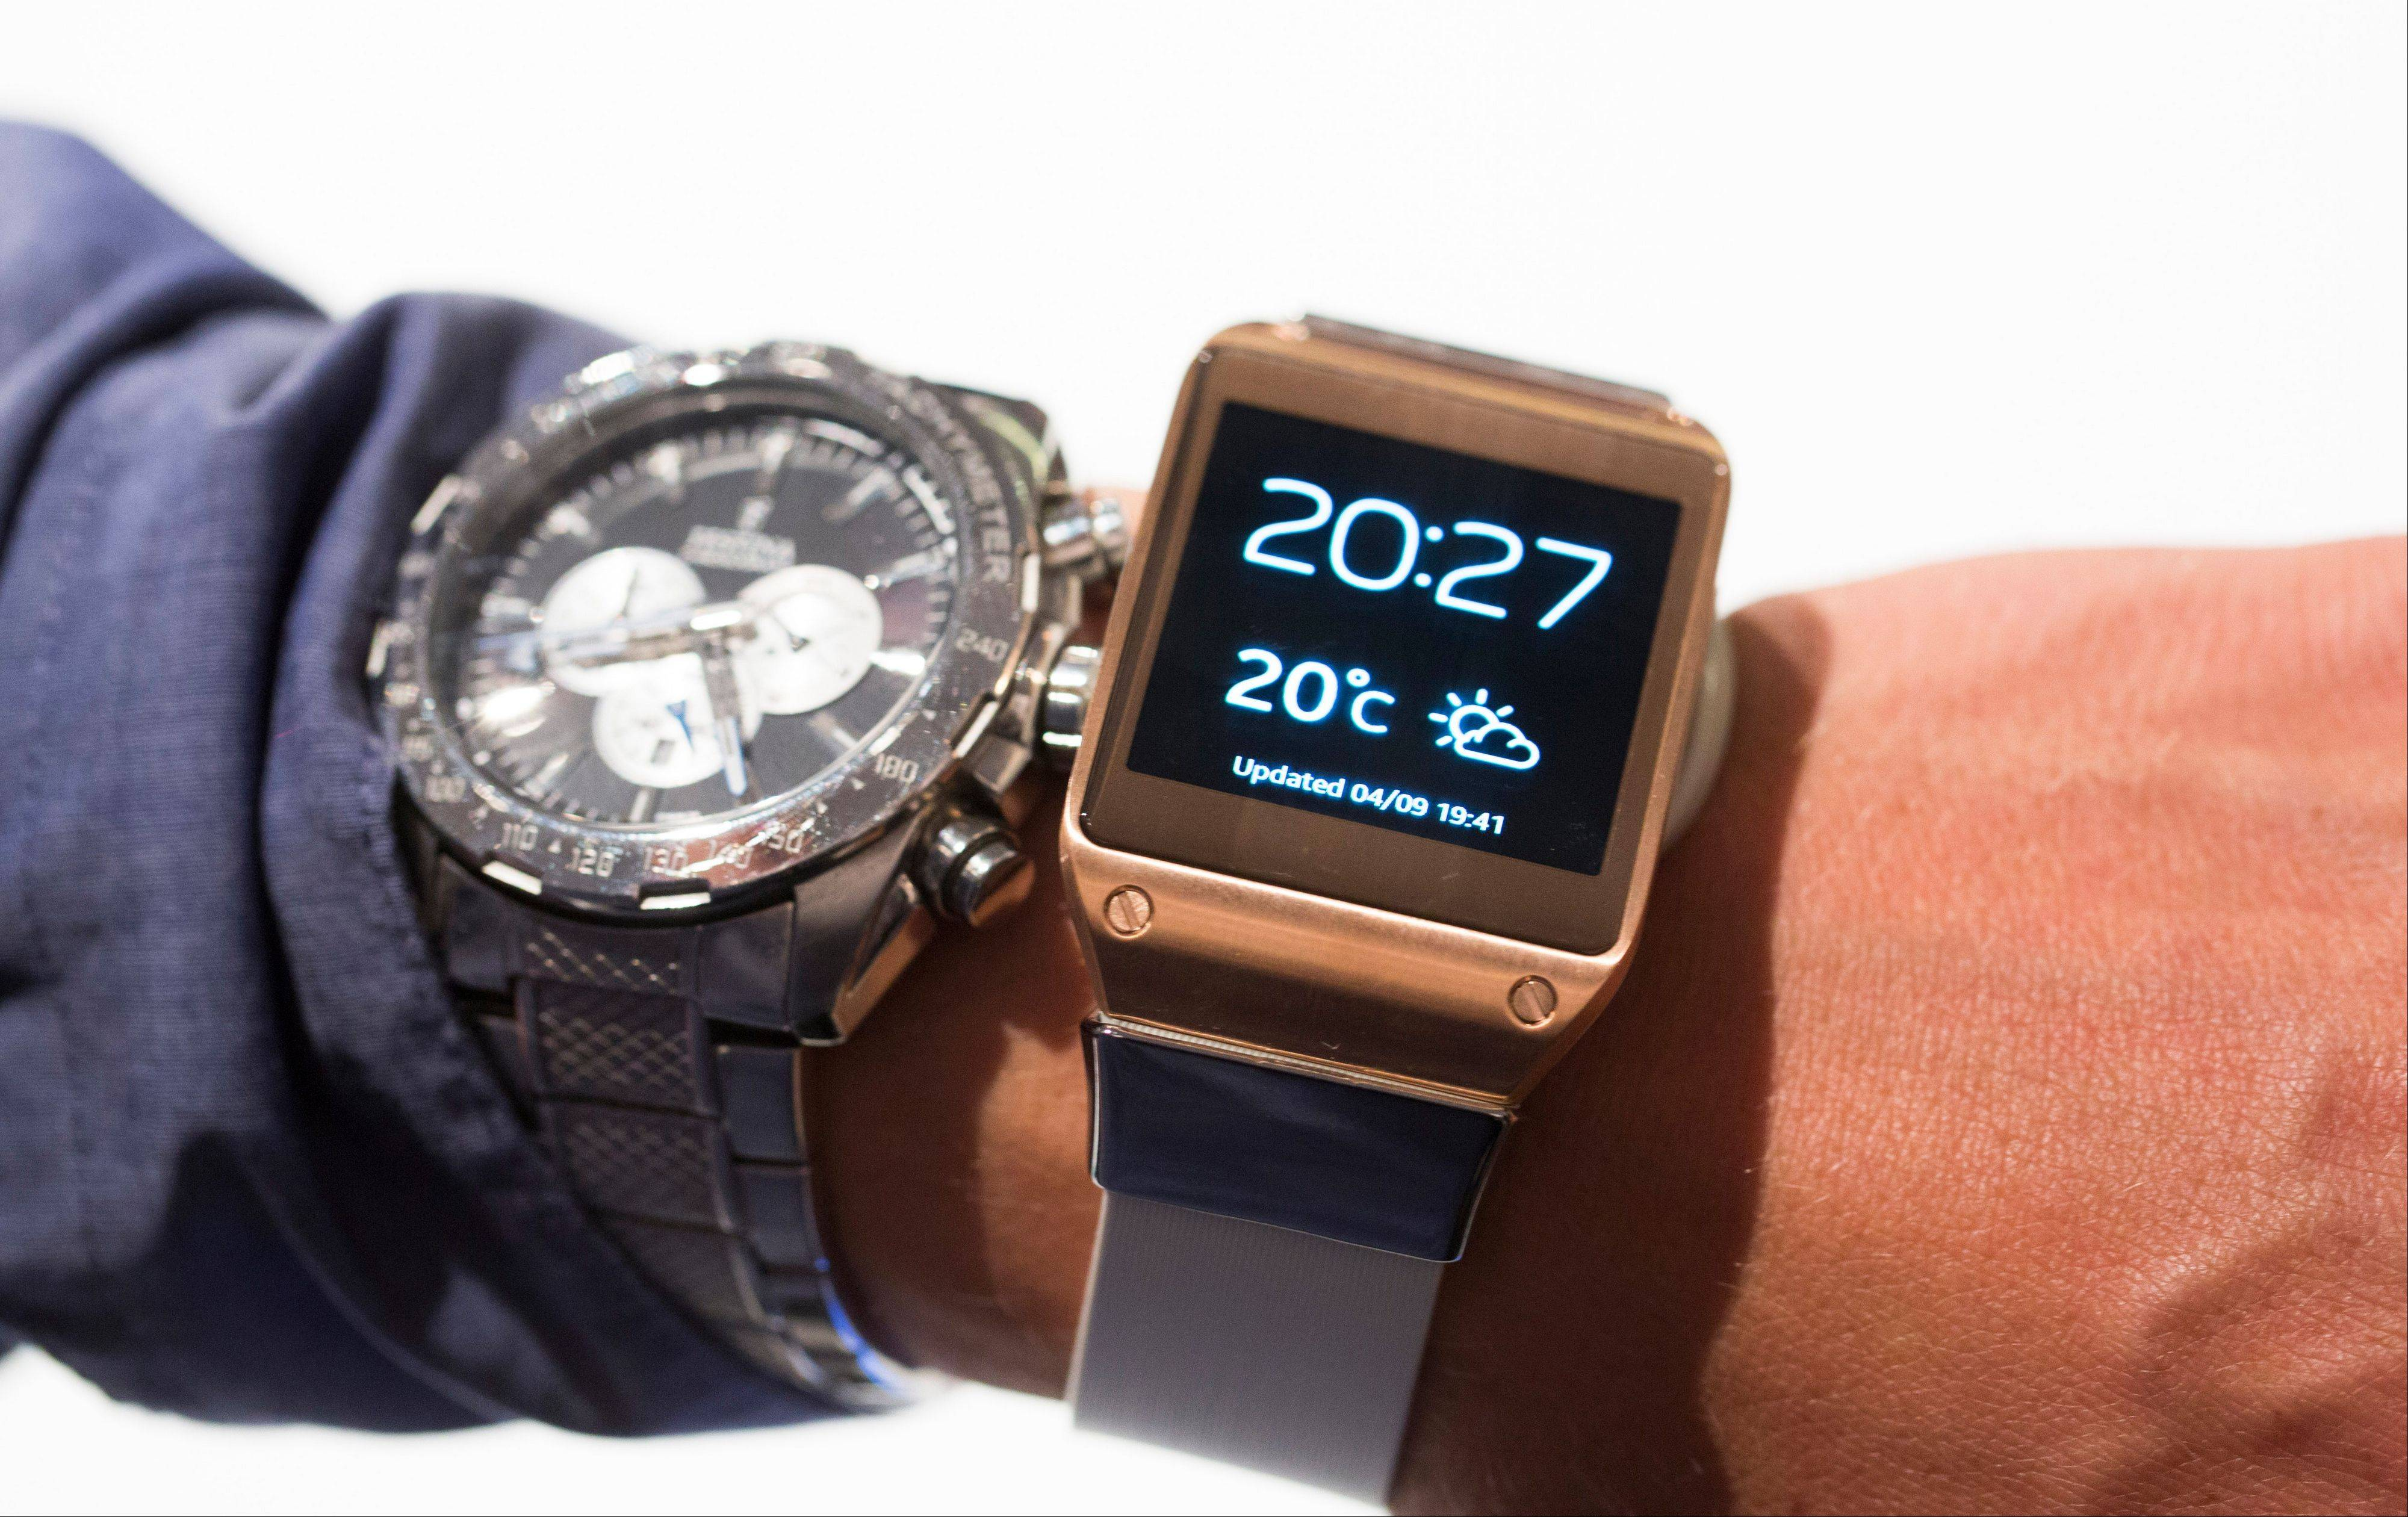 Many Swiss watchmakers will likely continue to do well because a smartwatch may often be an addition to a collection rather than a replacement for a $5,000 Rolex, according to Jon Cox, an analyst at Kepler Cheuvreux in Zurich.